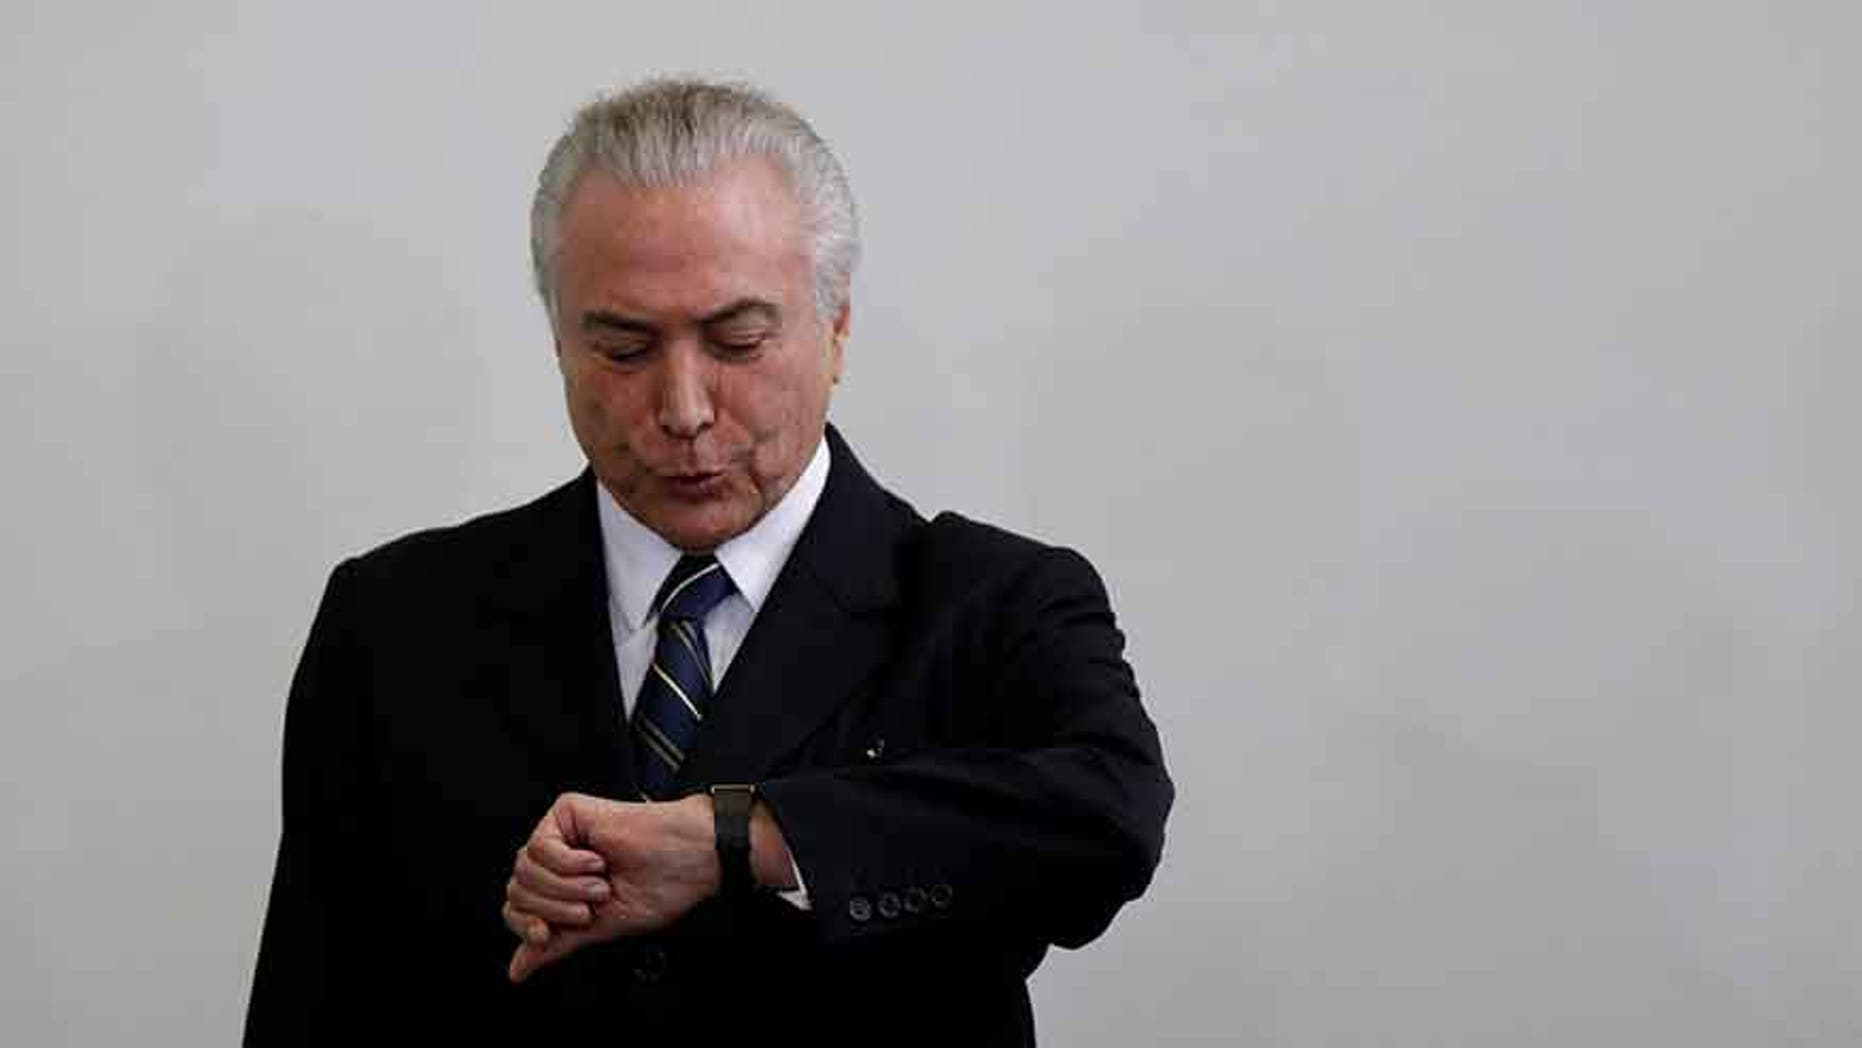 Brazil's President Michel Temer at the Planalto Palace in Brasilia, Brazil May 12, 2017.